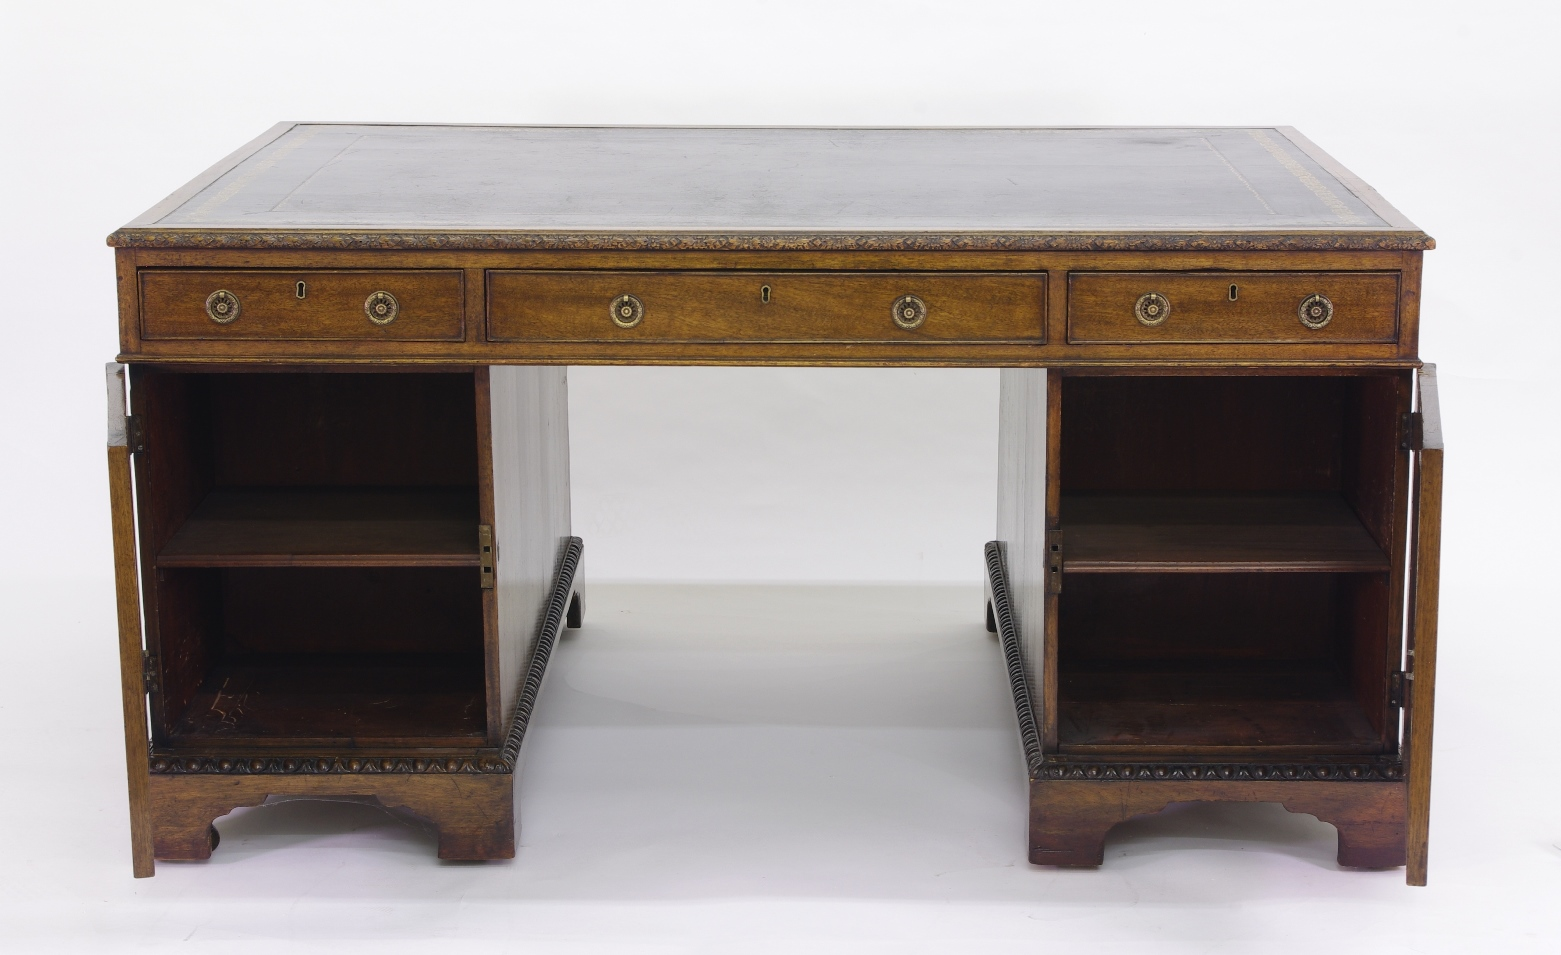 View 6: Victorian Mahogany Partners Desk, c. 1840-60